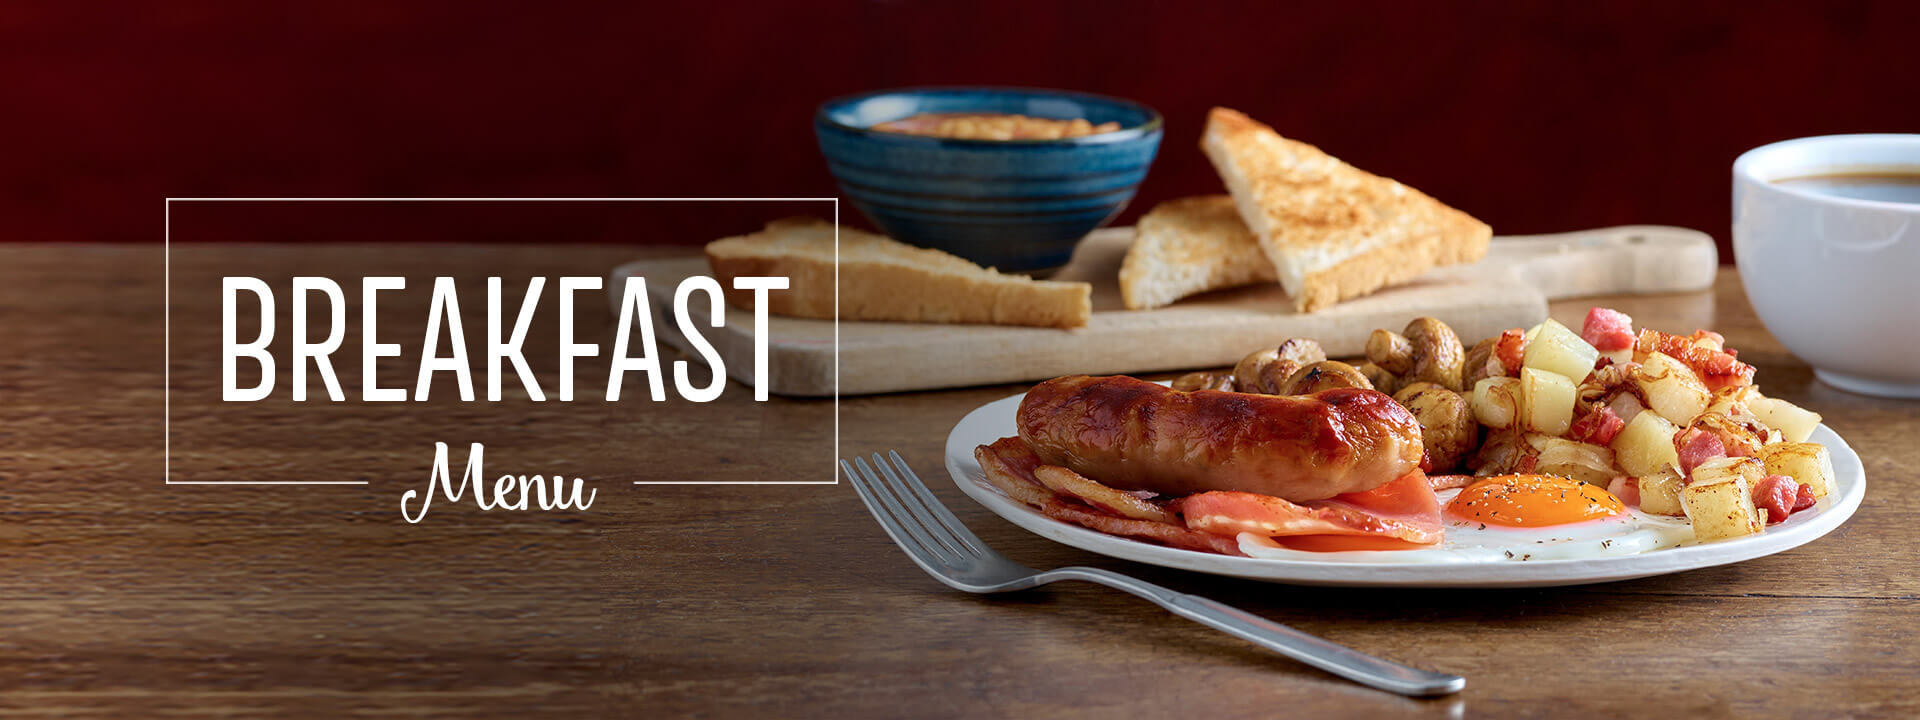 Breakfast at Toby Carvery Ewell - Book Now